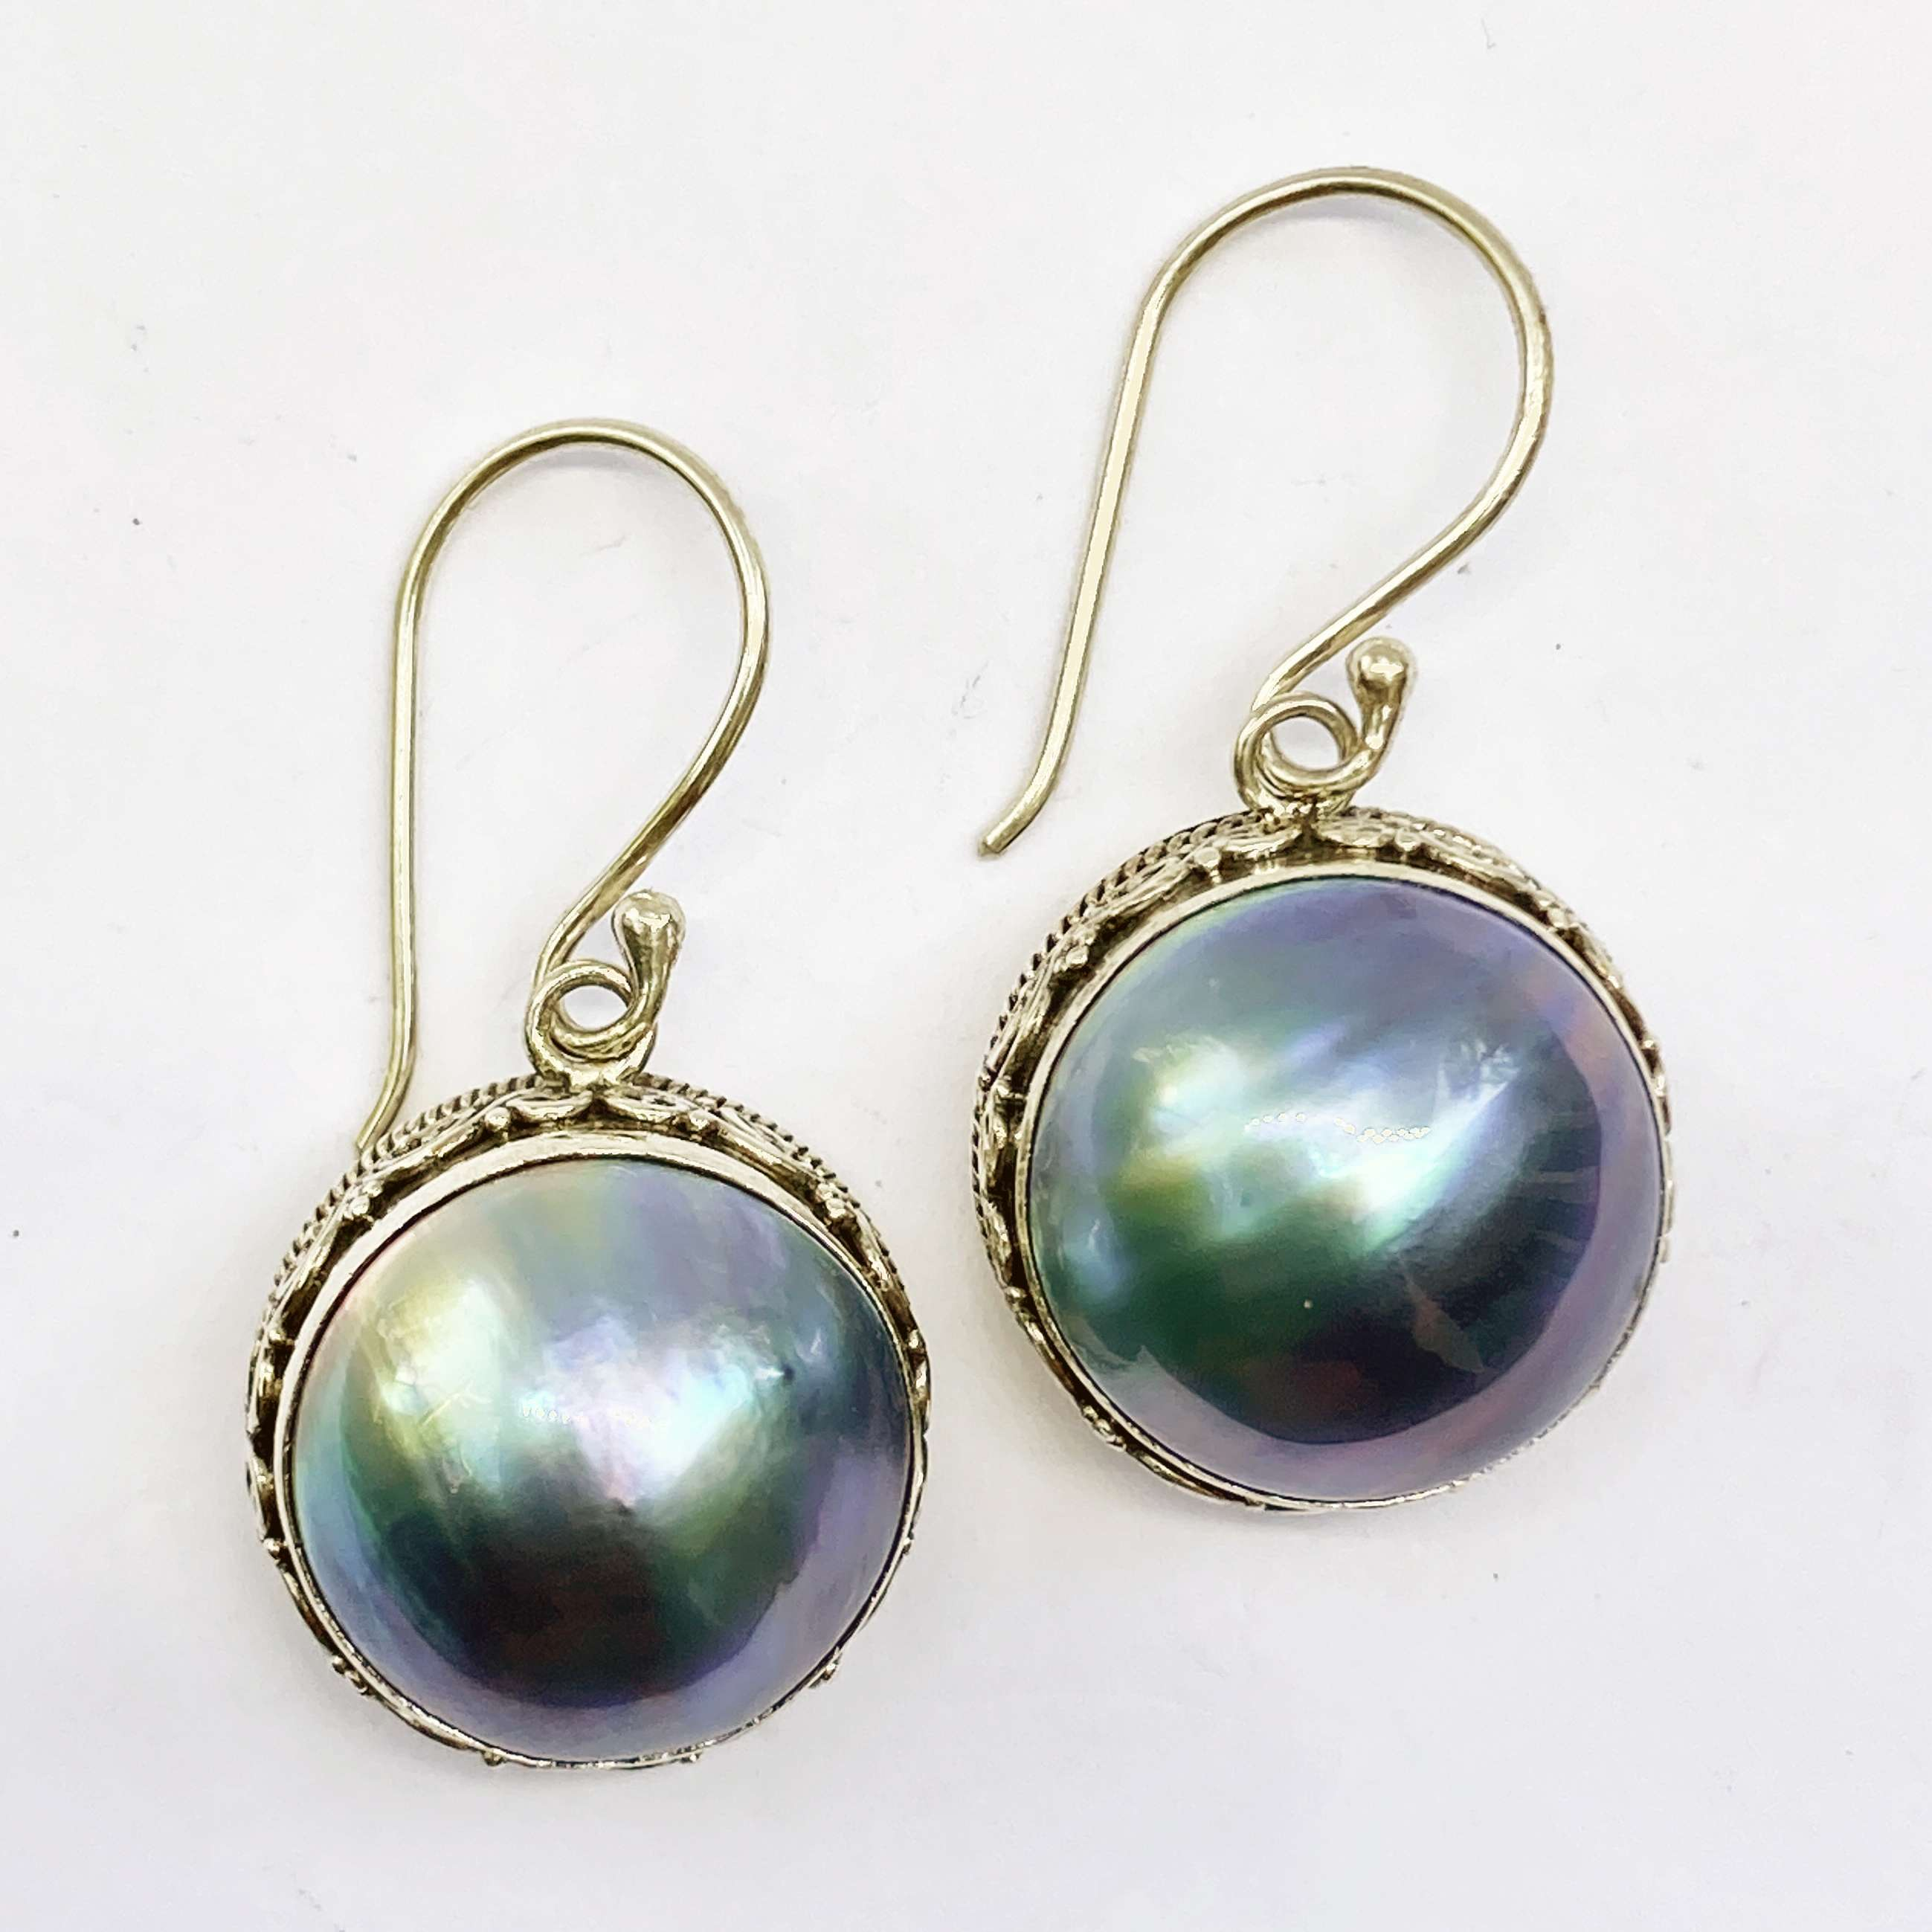 (HANDMADE 925 BALI STERLING SILVER EARRINGS WITH BLUE MABE PEARL)